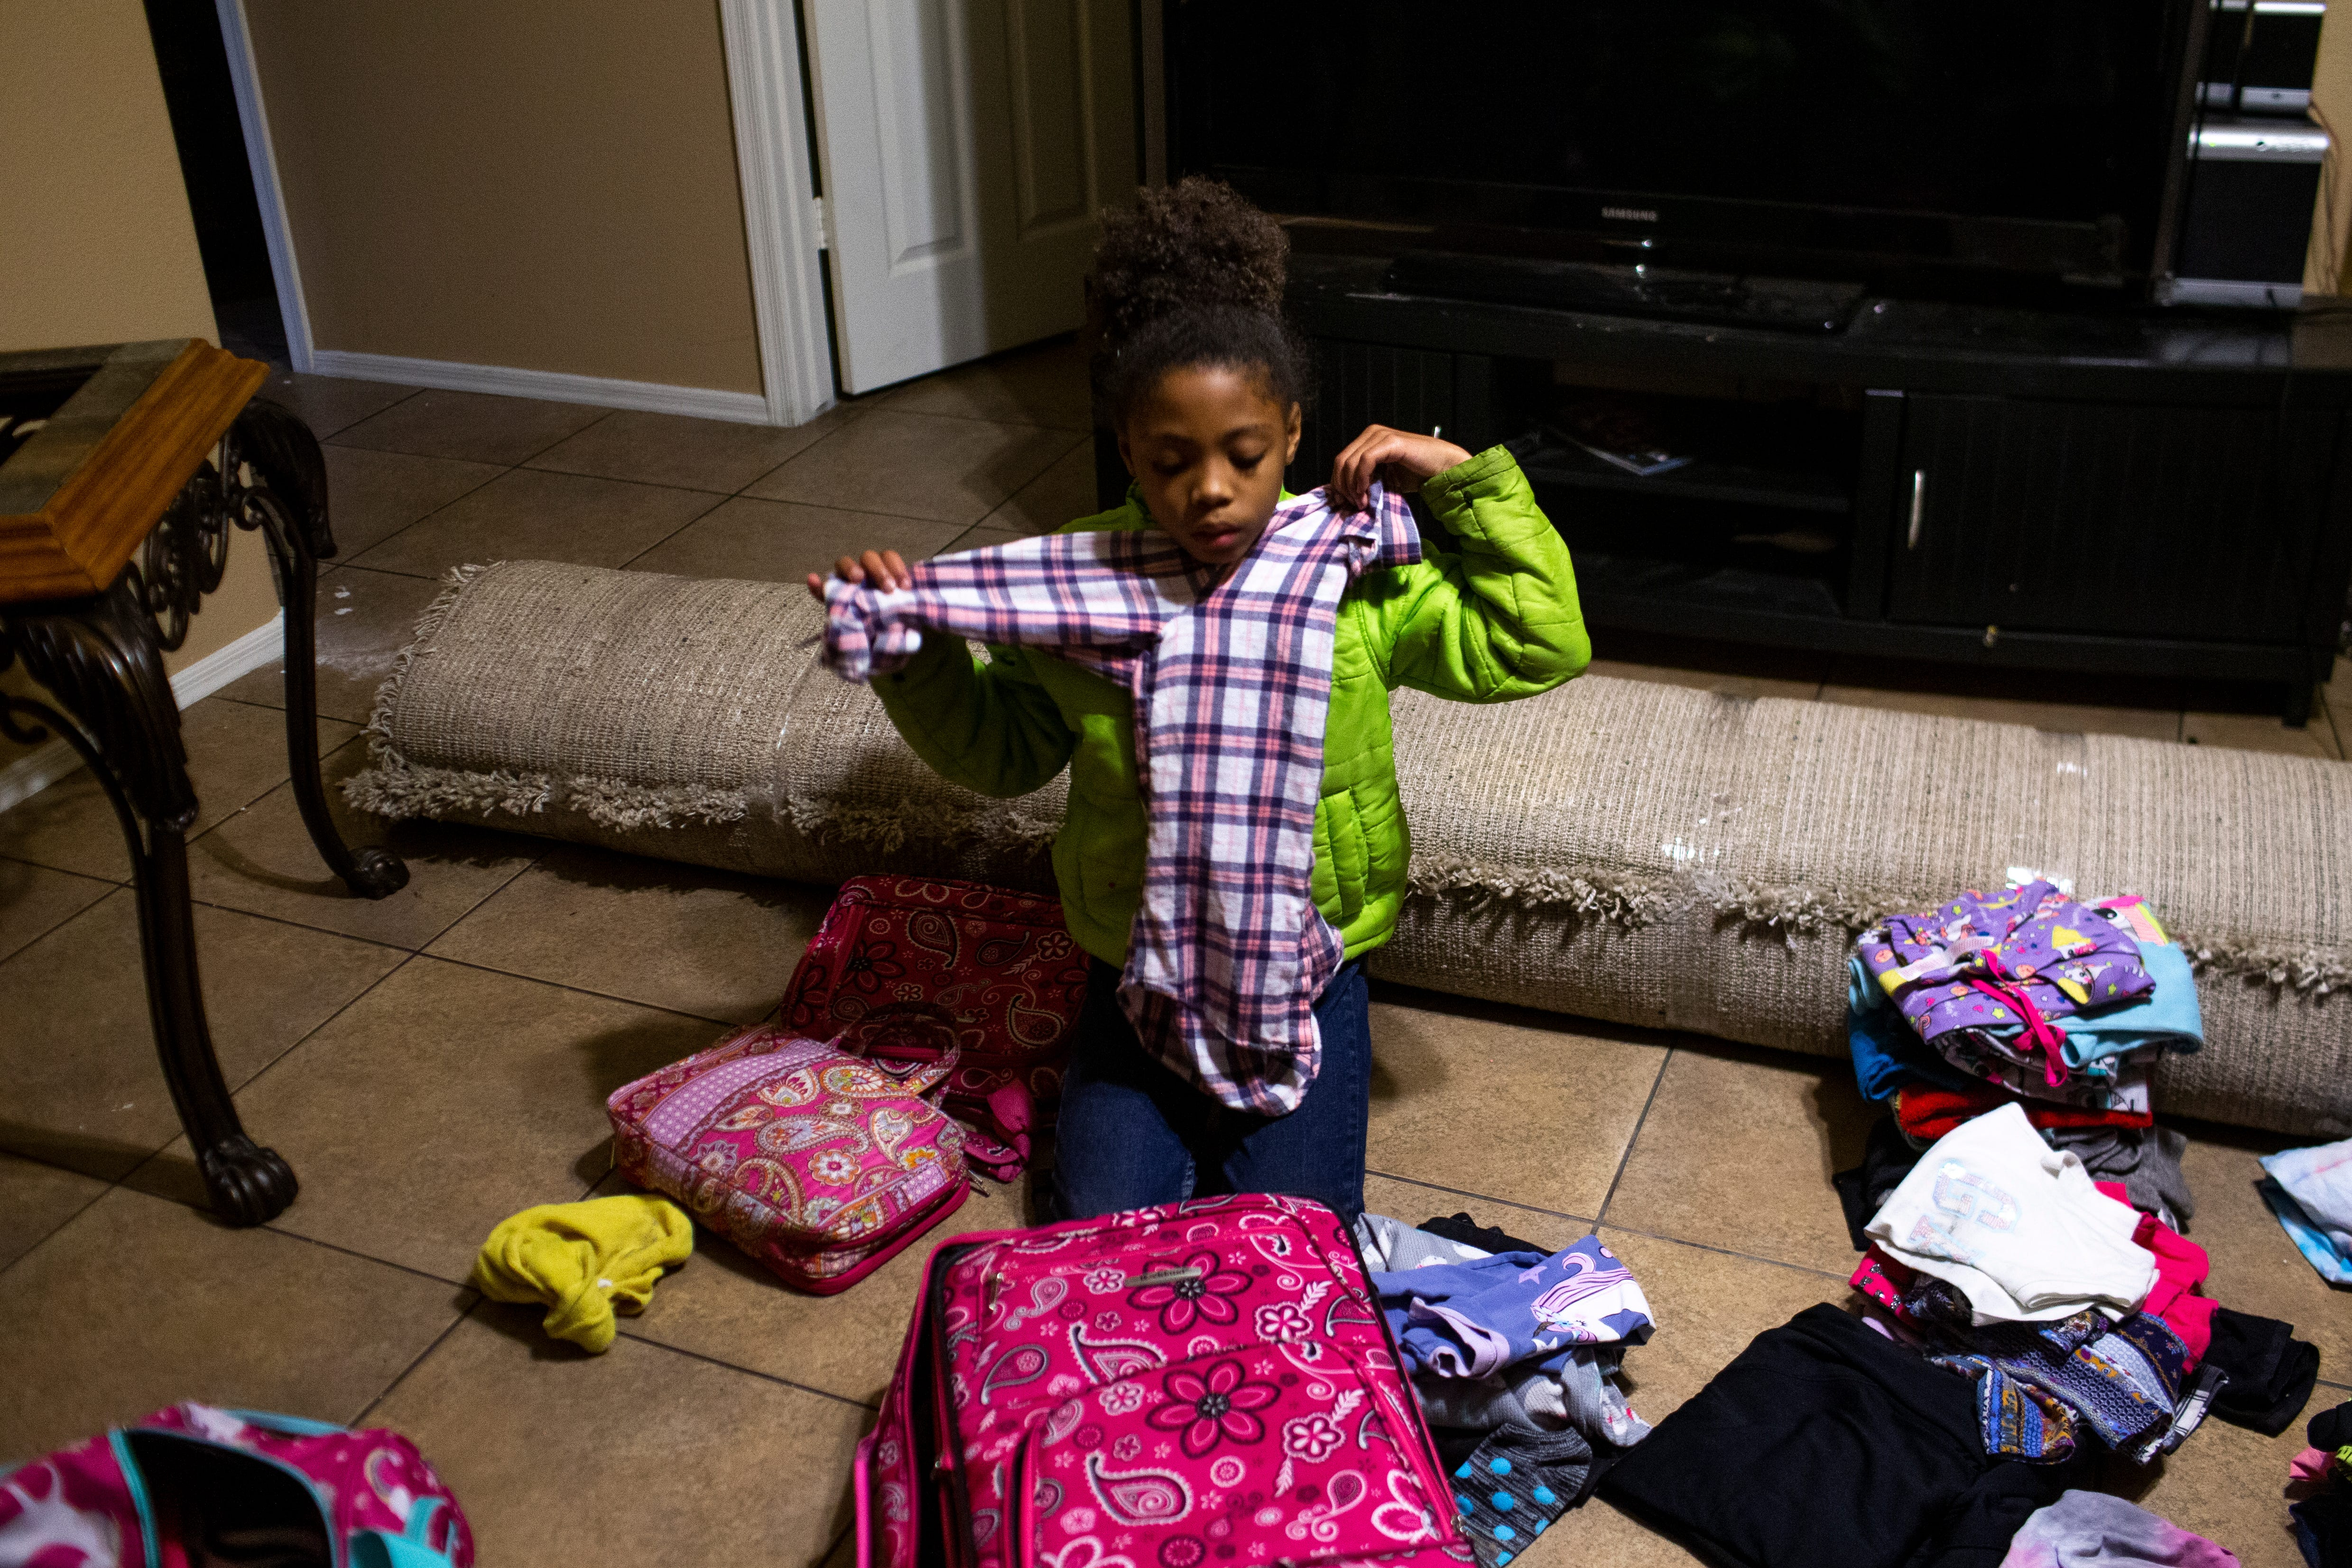 Khalia Rowe-Haysbert, 9, packs her clothes before leaving on a flight to stay with family in California after her grandmother Sylvia Haysbert-Stevens, whom she had been living with, was ordered to be evicted from her rental home in El Mirage on March 11, 2021. Despite a moratorium preventing landlords from evicting tenants during the COVID-19 pandemic, a court ordered Stevens to vacate the El Mirage home she had been living in with her daughter and granddaughter.